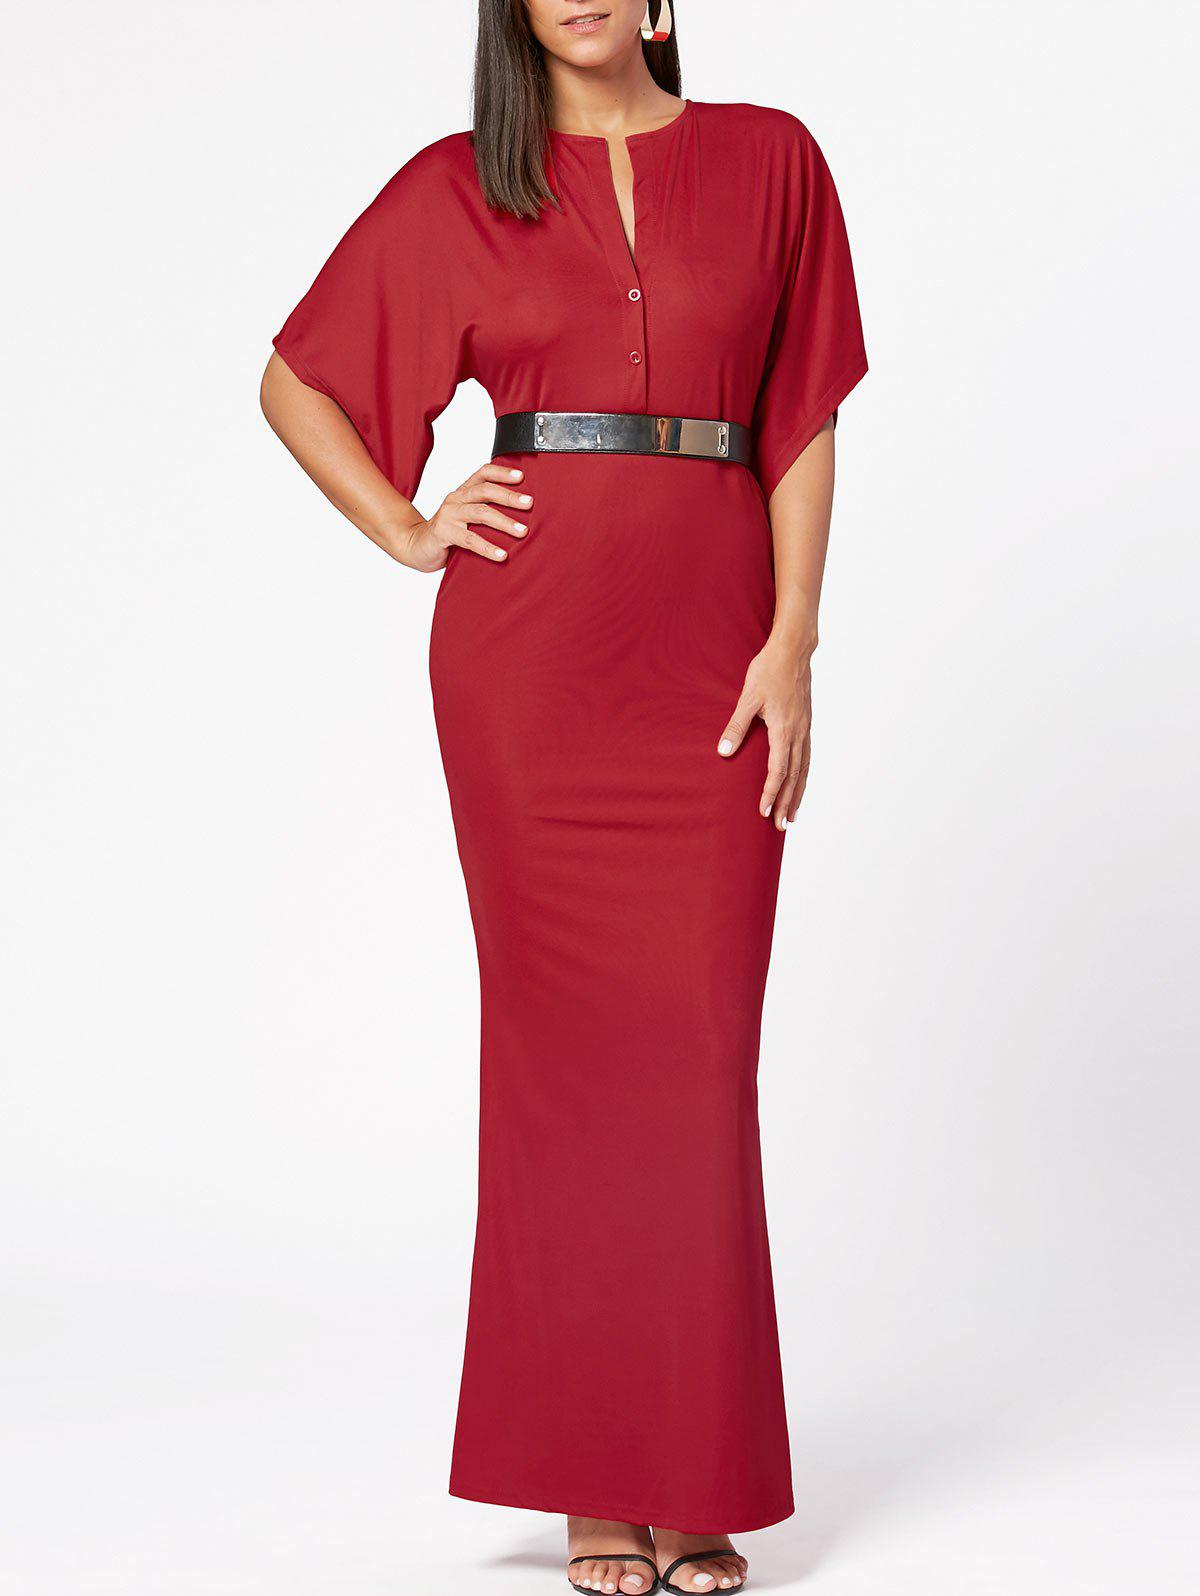 Raglan Sleeve V Neck Bodycon Maxi Dress - Rouge M